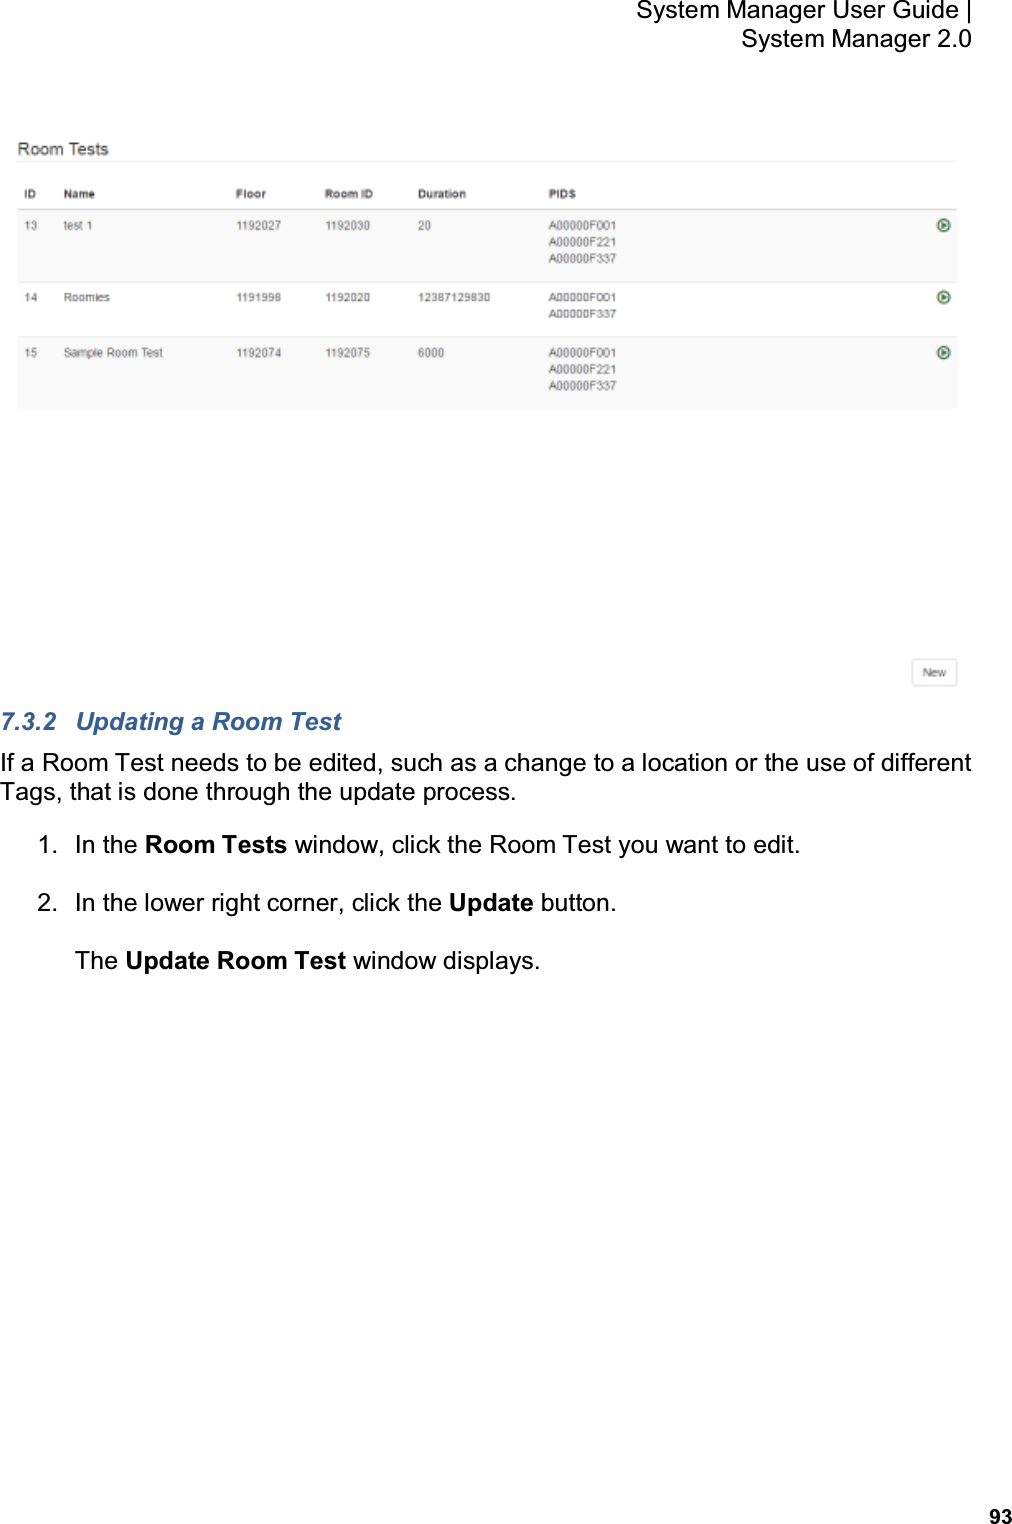 93 System Manager User Guide    System Manager 2.0  7.3.2  Updating a Room Test If a Room Test needs to be edited, such as a change to a location or the use of different Tags, that is done through the update process. 1.  In the Room Tests window, click the Room Test you want to edit. 2.  In the lower right corner, click the Update button. The Update Room Test window displays.